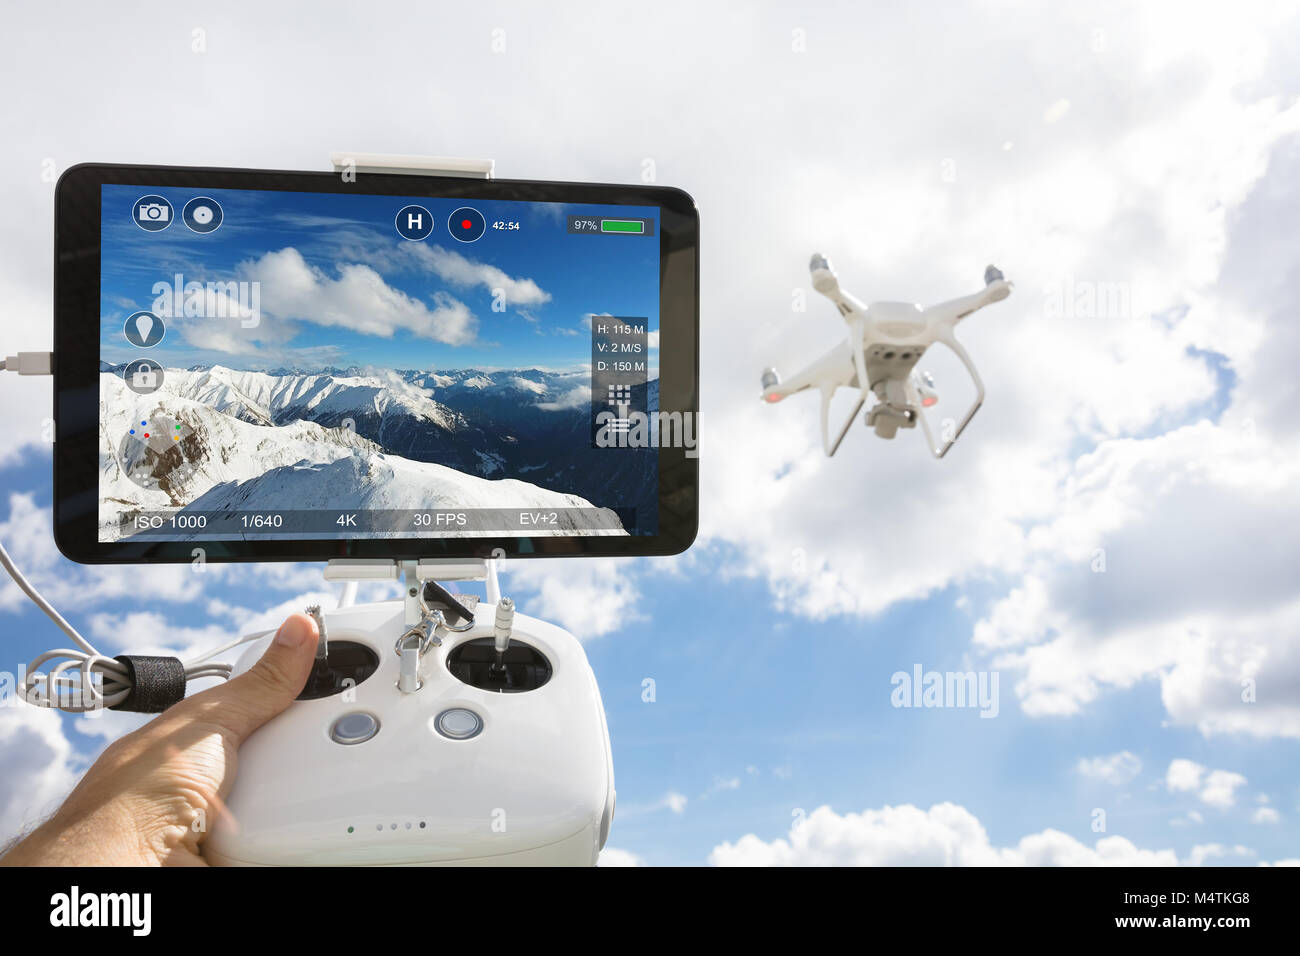 Cropped image of hand controlling drone filming snowcapped mountainsagainst cloudy sky - Stock Image